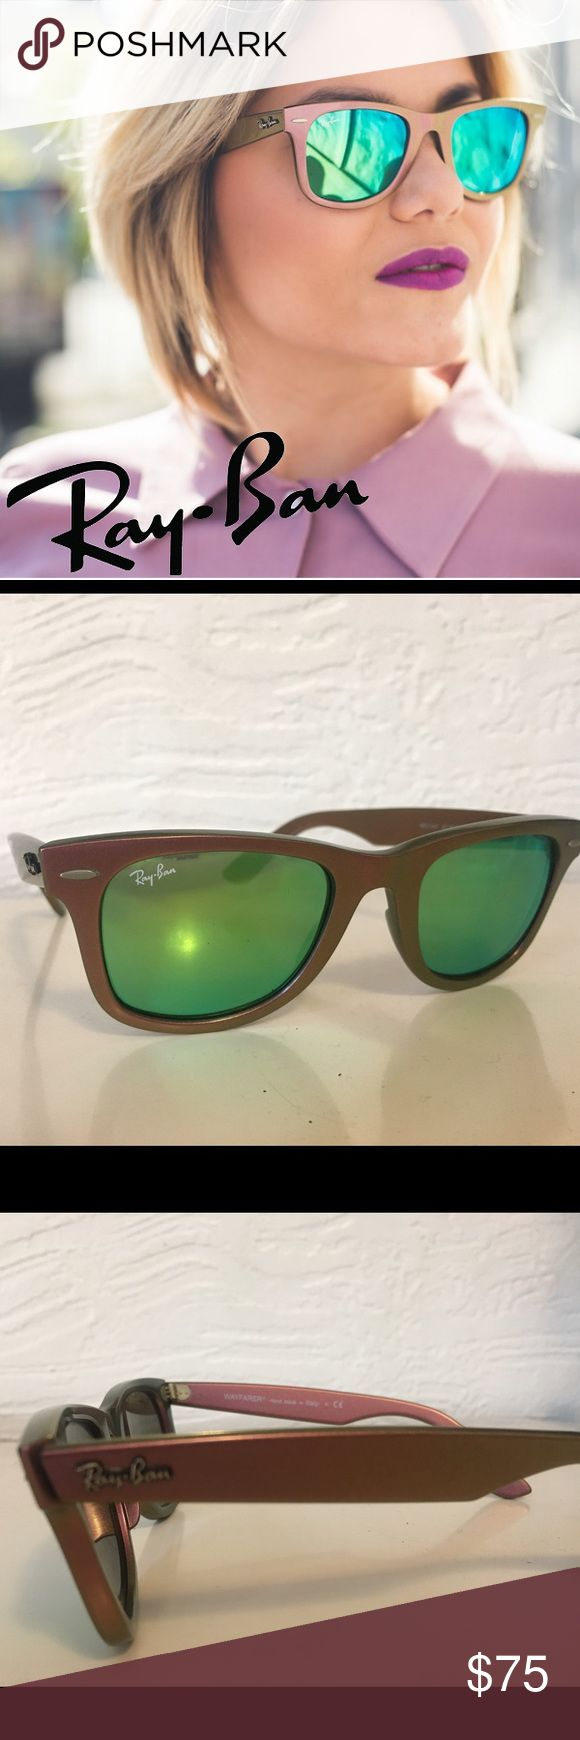 Ray-Ban Mirrored Wayfarers Cosmo Pre-owned ORIGINAL WAYFARER COSMO Model code: RB2140 611019             FRAME:Green,Pink LENSES: green flash Ray-Ban Original Wayfarer Cosmo RB2140 is crafted from the traditional and unmistakable Wayfarer frame, but finished with shifting colors that flow mysteriously into one another, giving it an effect never before seen. Some minor scratching on left lense.  SIZE Shape: Square Size Lens-Bridge: 50 22 Temple Length: 150 Ray-Ban Accessories Sunglasses